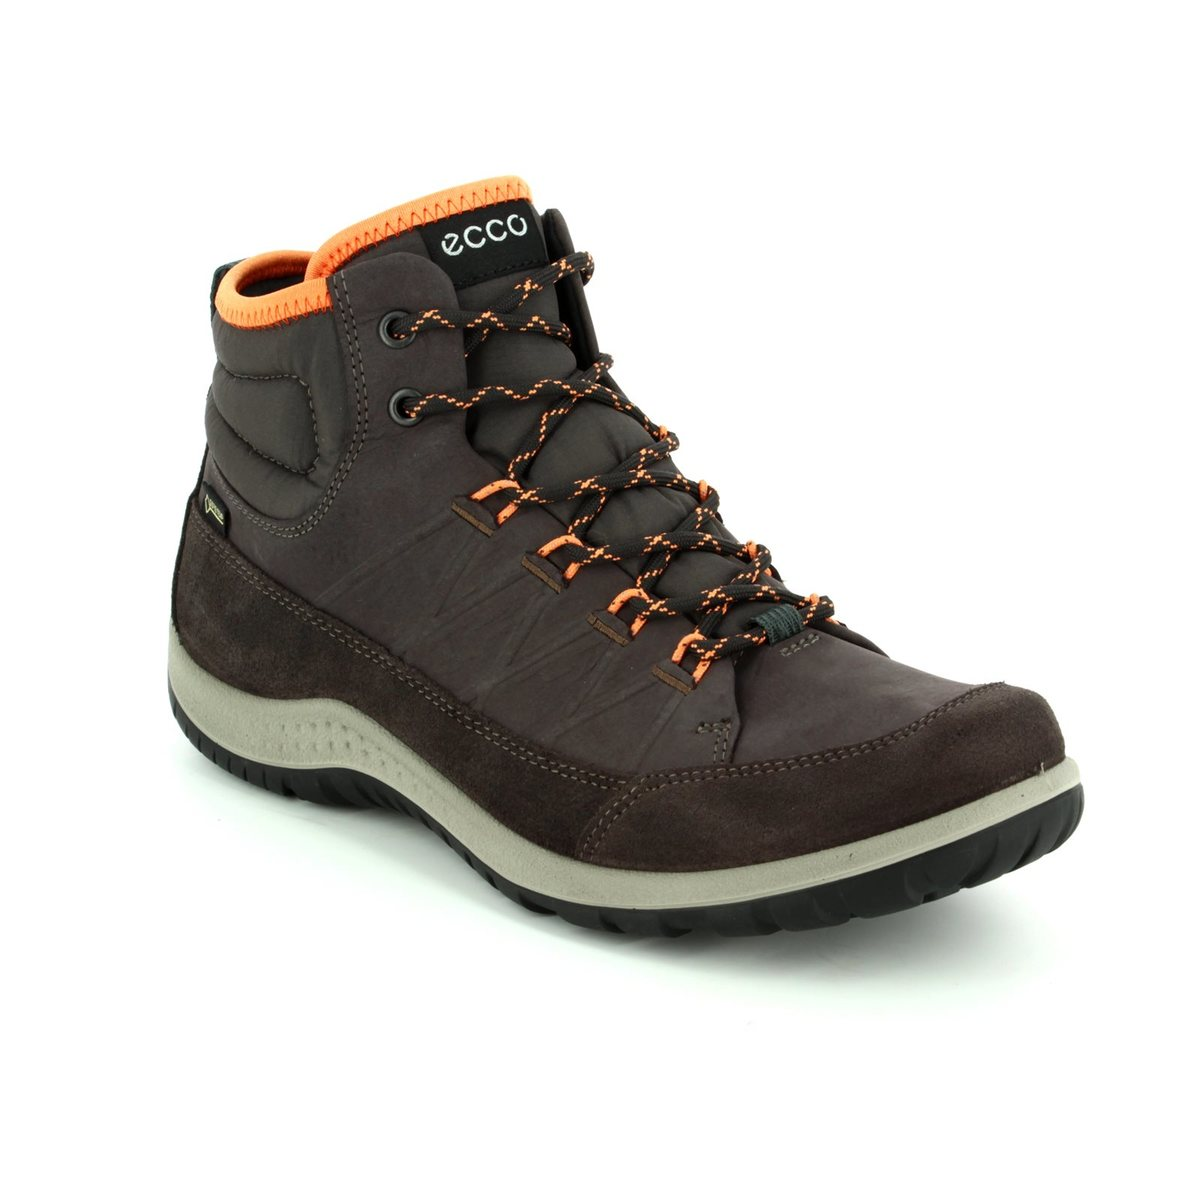 4038cd289dd3 ECCO Walking Boots - Brown multi - 838513 55860 ASPINA HI GORE-TEX